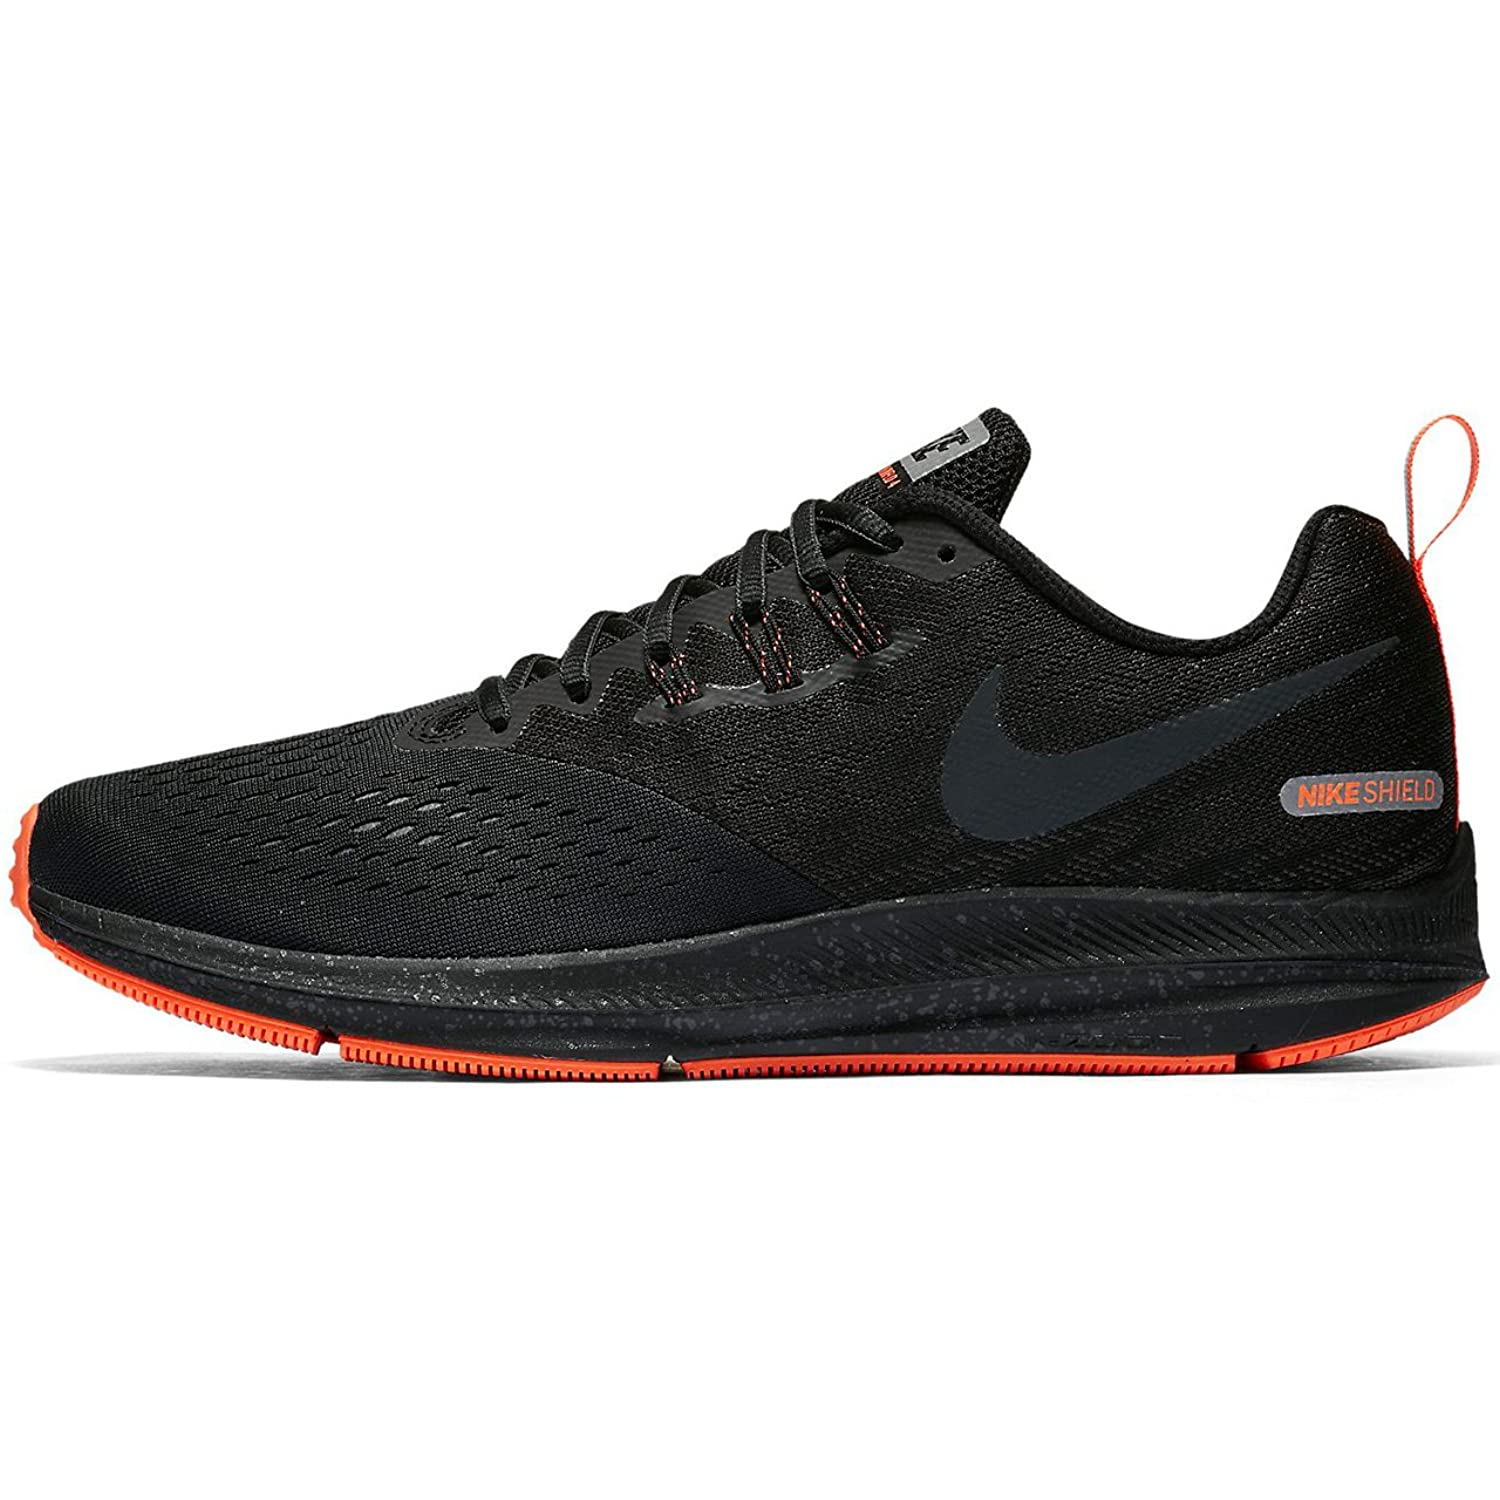 New Trendy Nike Zoom Winflo 4 For Men Selling Well